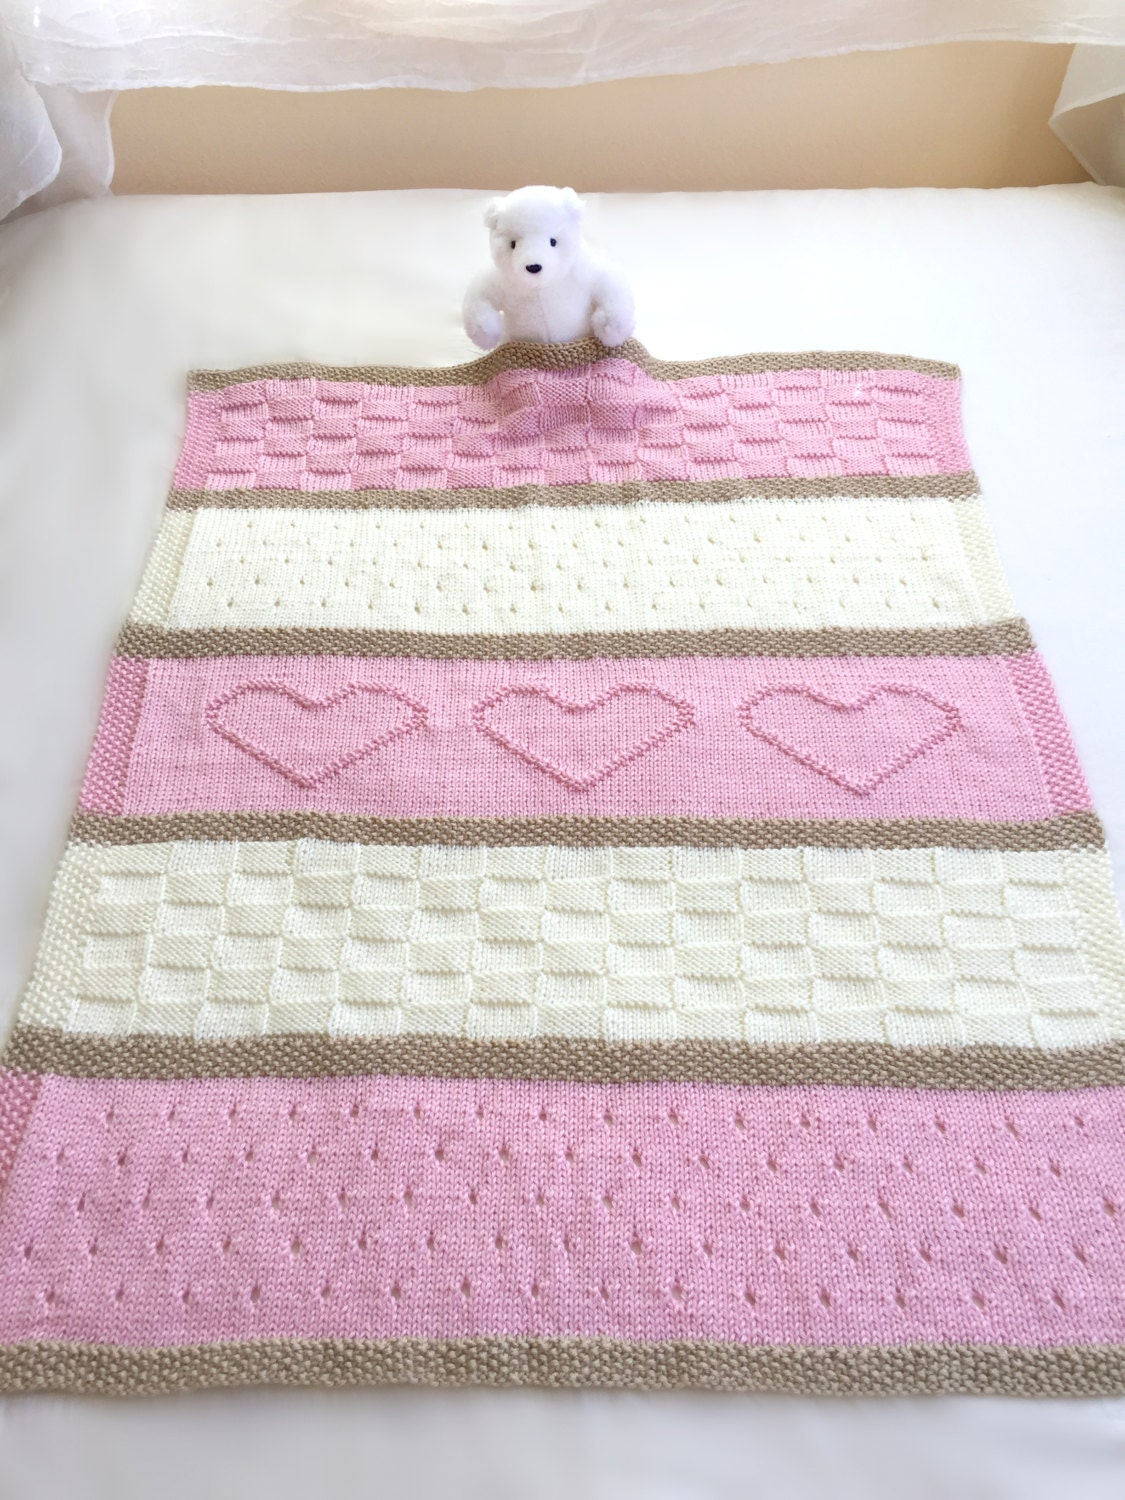 Knitting Patterns For Baby Blankets : Baby Blanket Pattern Knit Baby Blanket Pattern Heart Baby